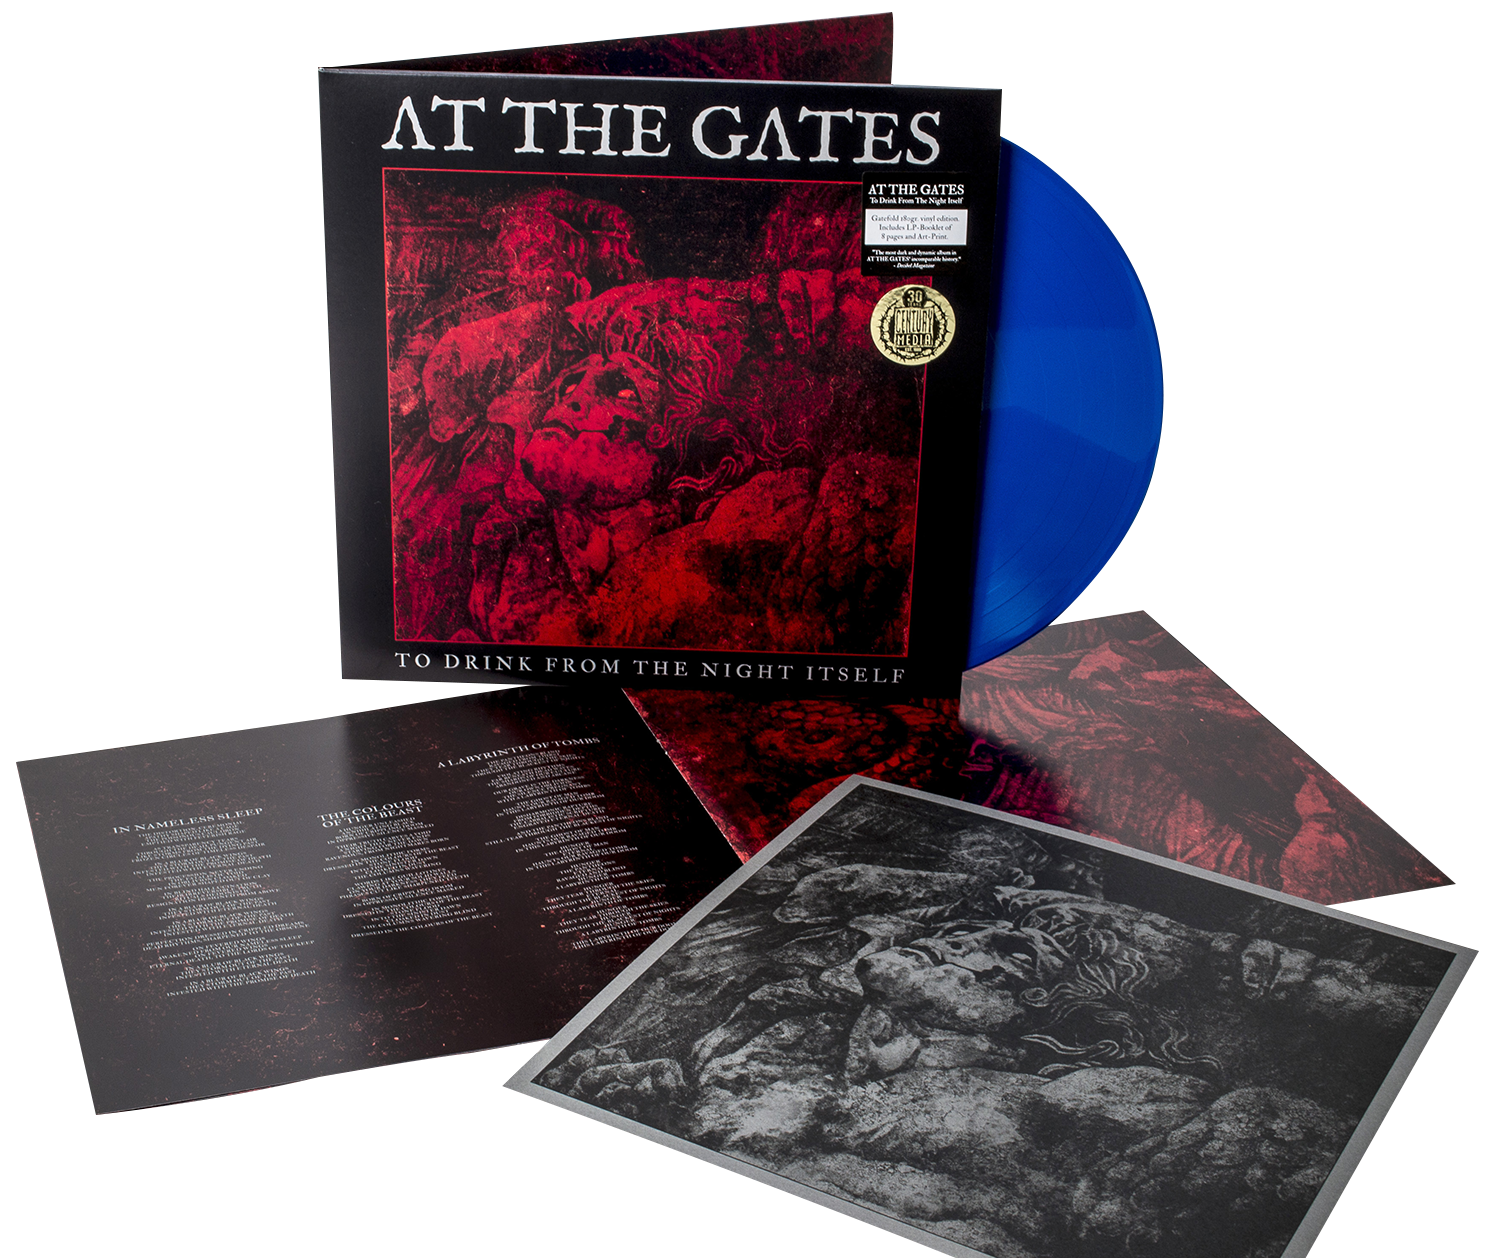 At The Gates - To drink from the night itself - LP - blue